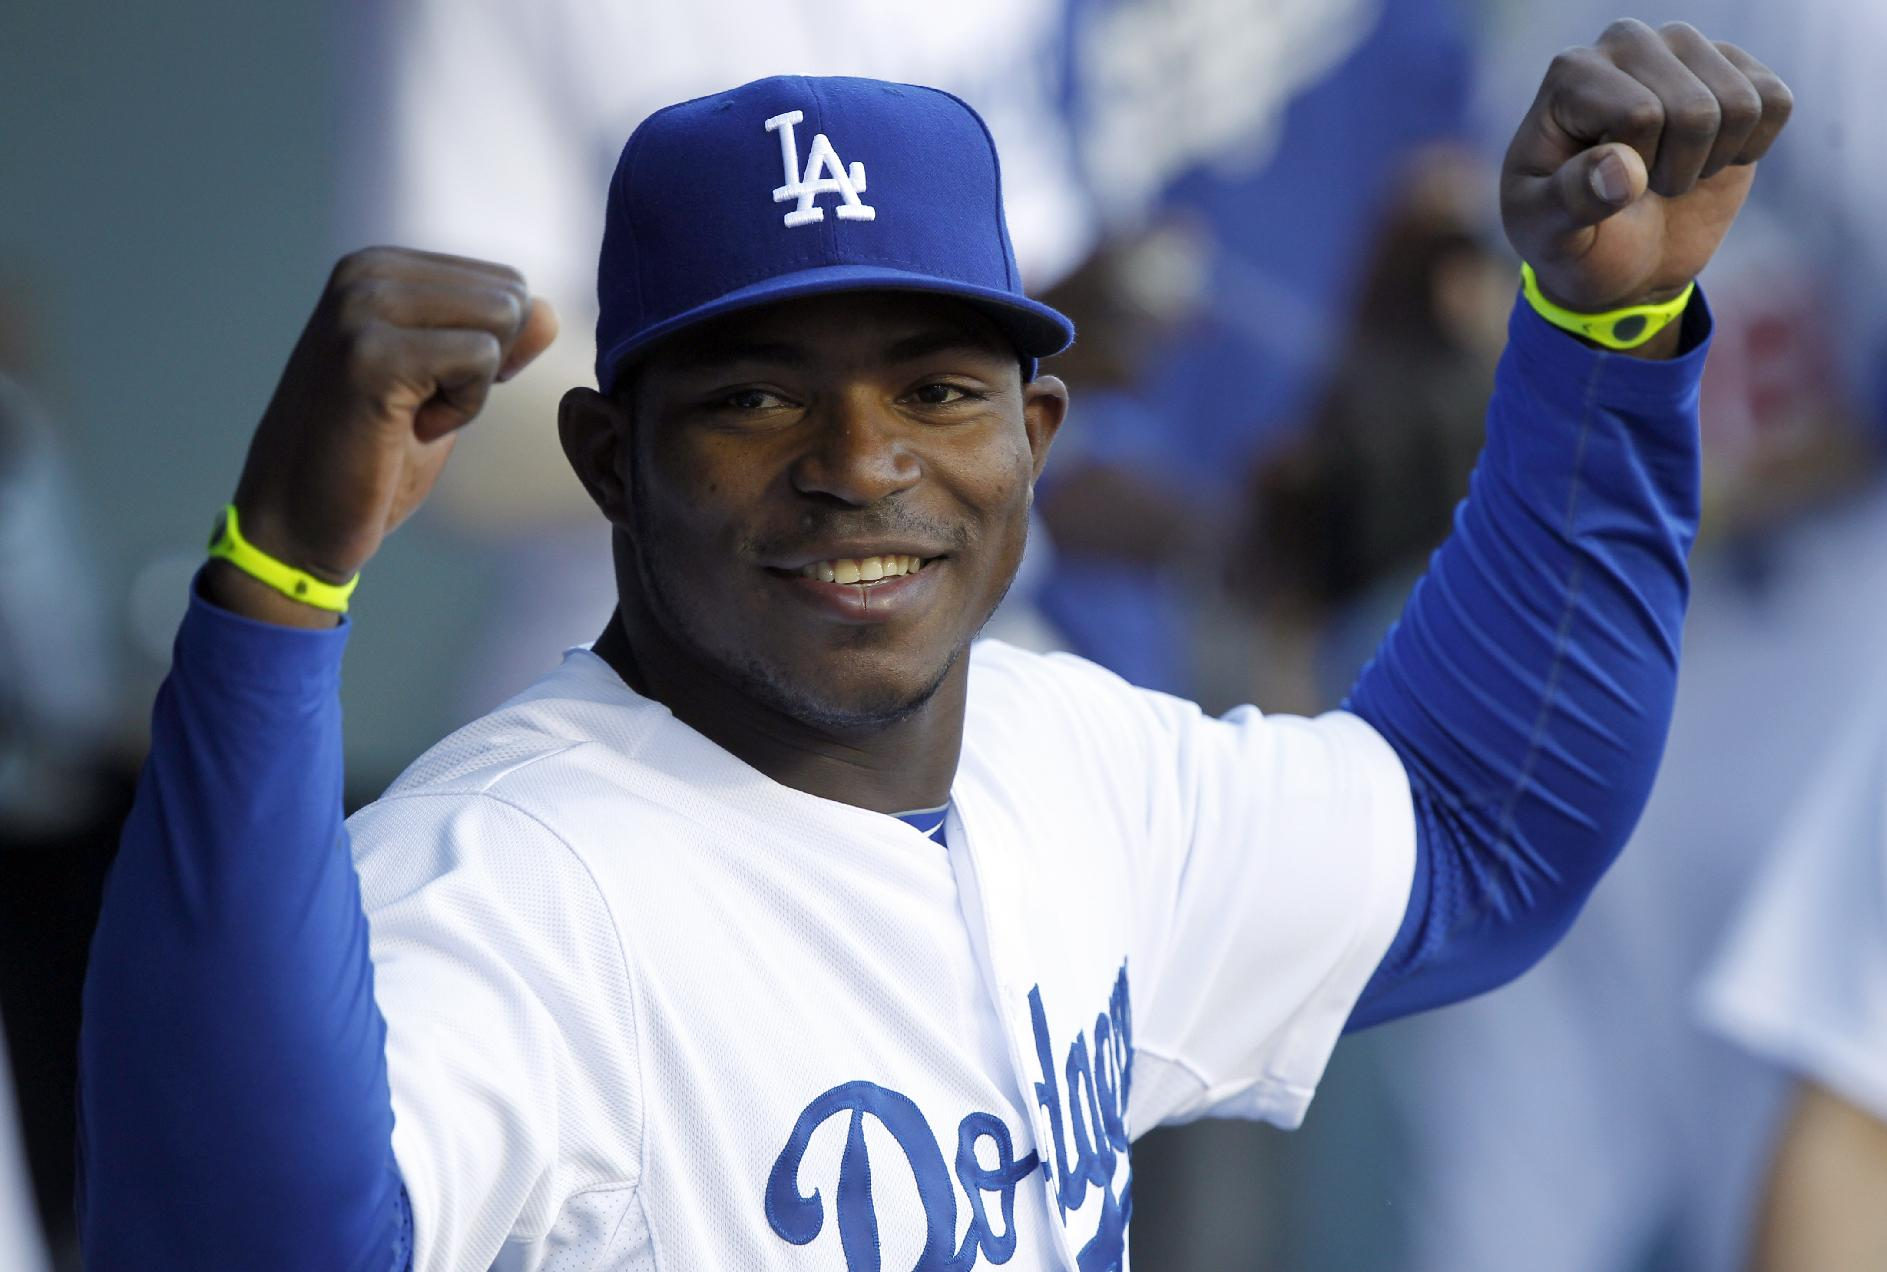 Dodgers' Yasiel Puig should wear $14,100 baseball glove just to…